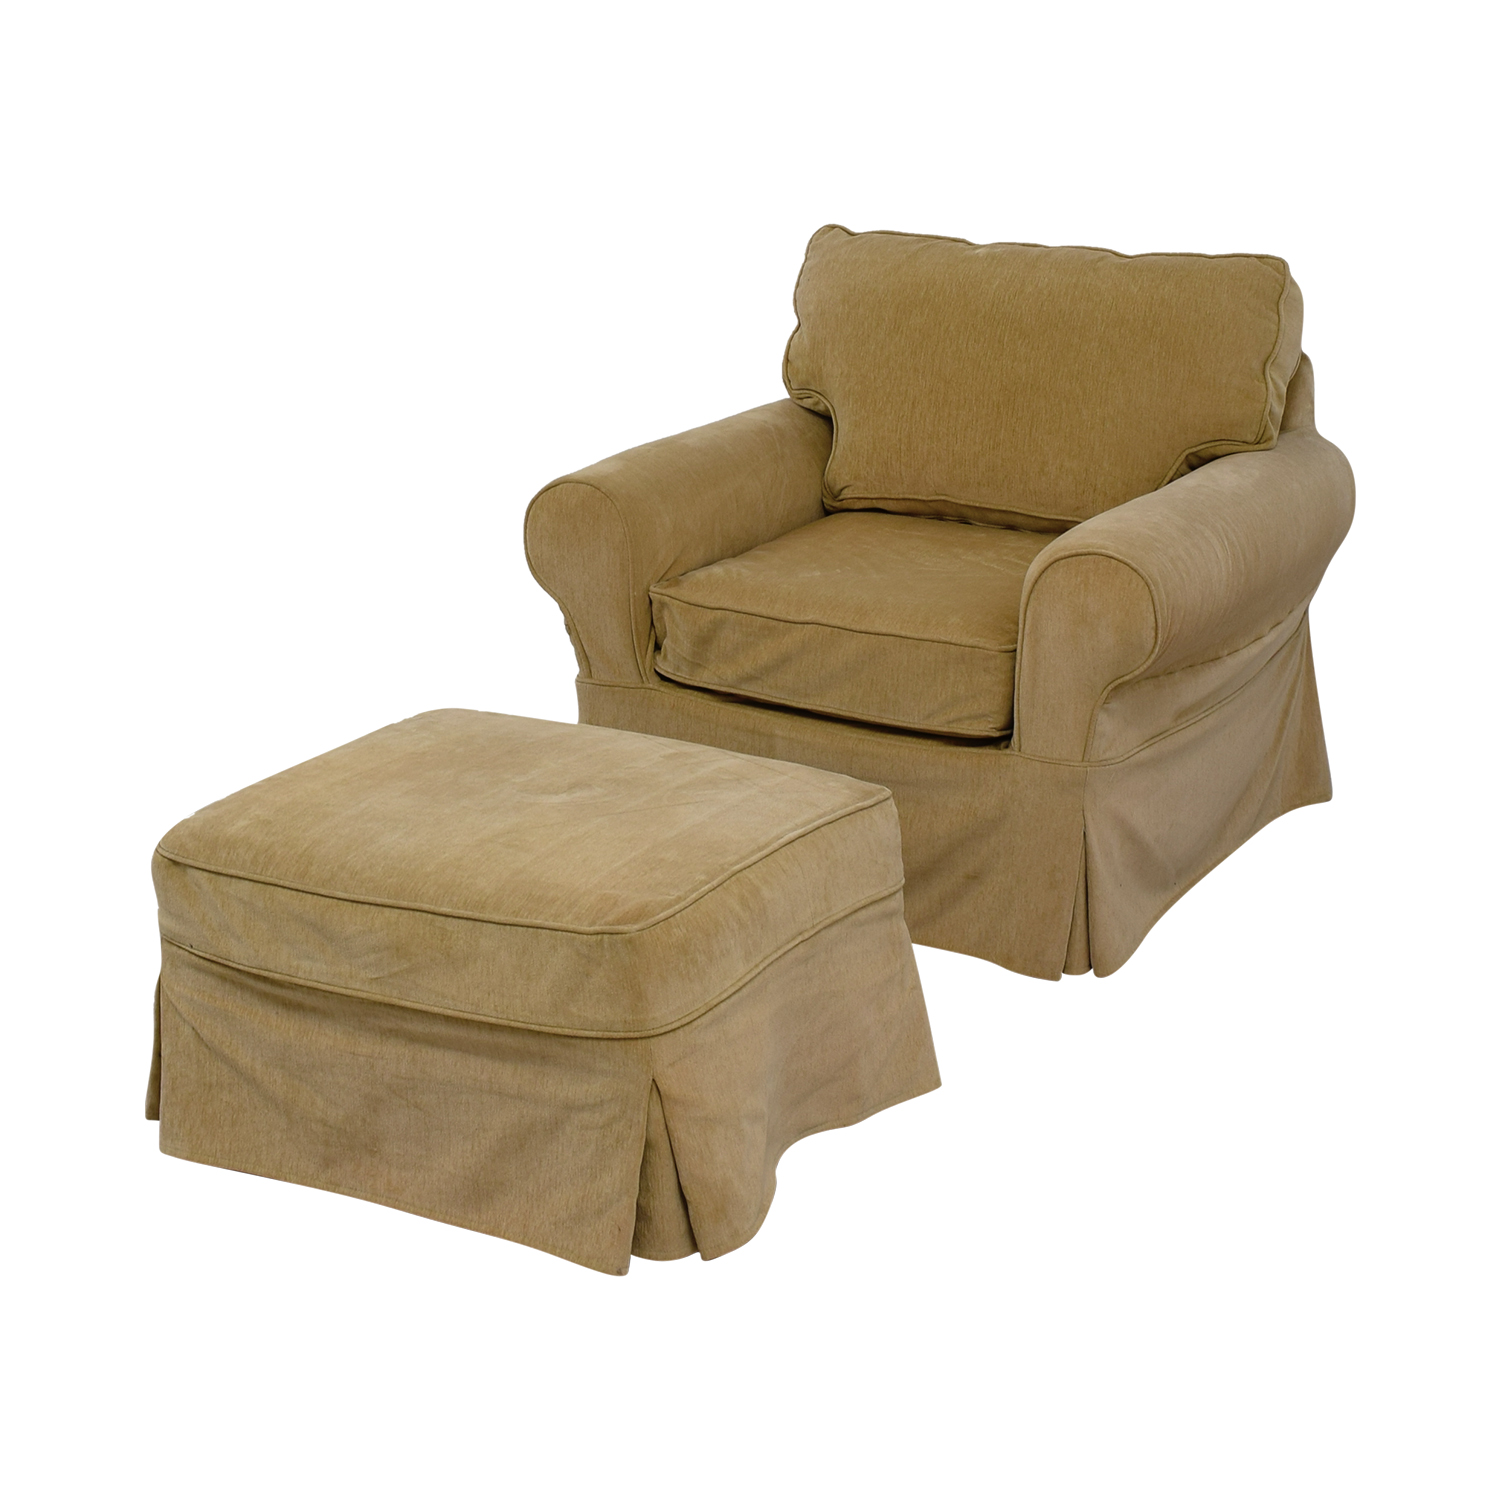 Miraculous 76 Off Mitchell Gold Bob Williams Mitchell Gold Bob Williams Beige Accent Chair And Ottoman Chairs Home Remodeling Inspirations Propsscottssportslandcom